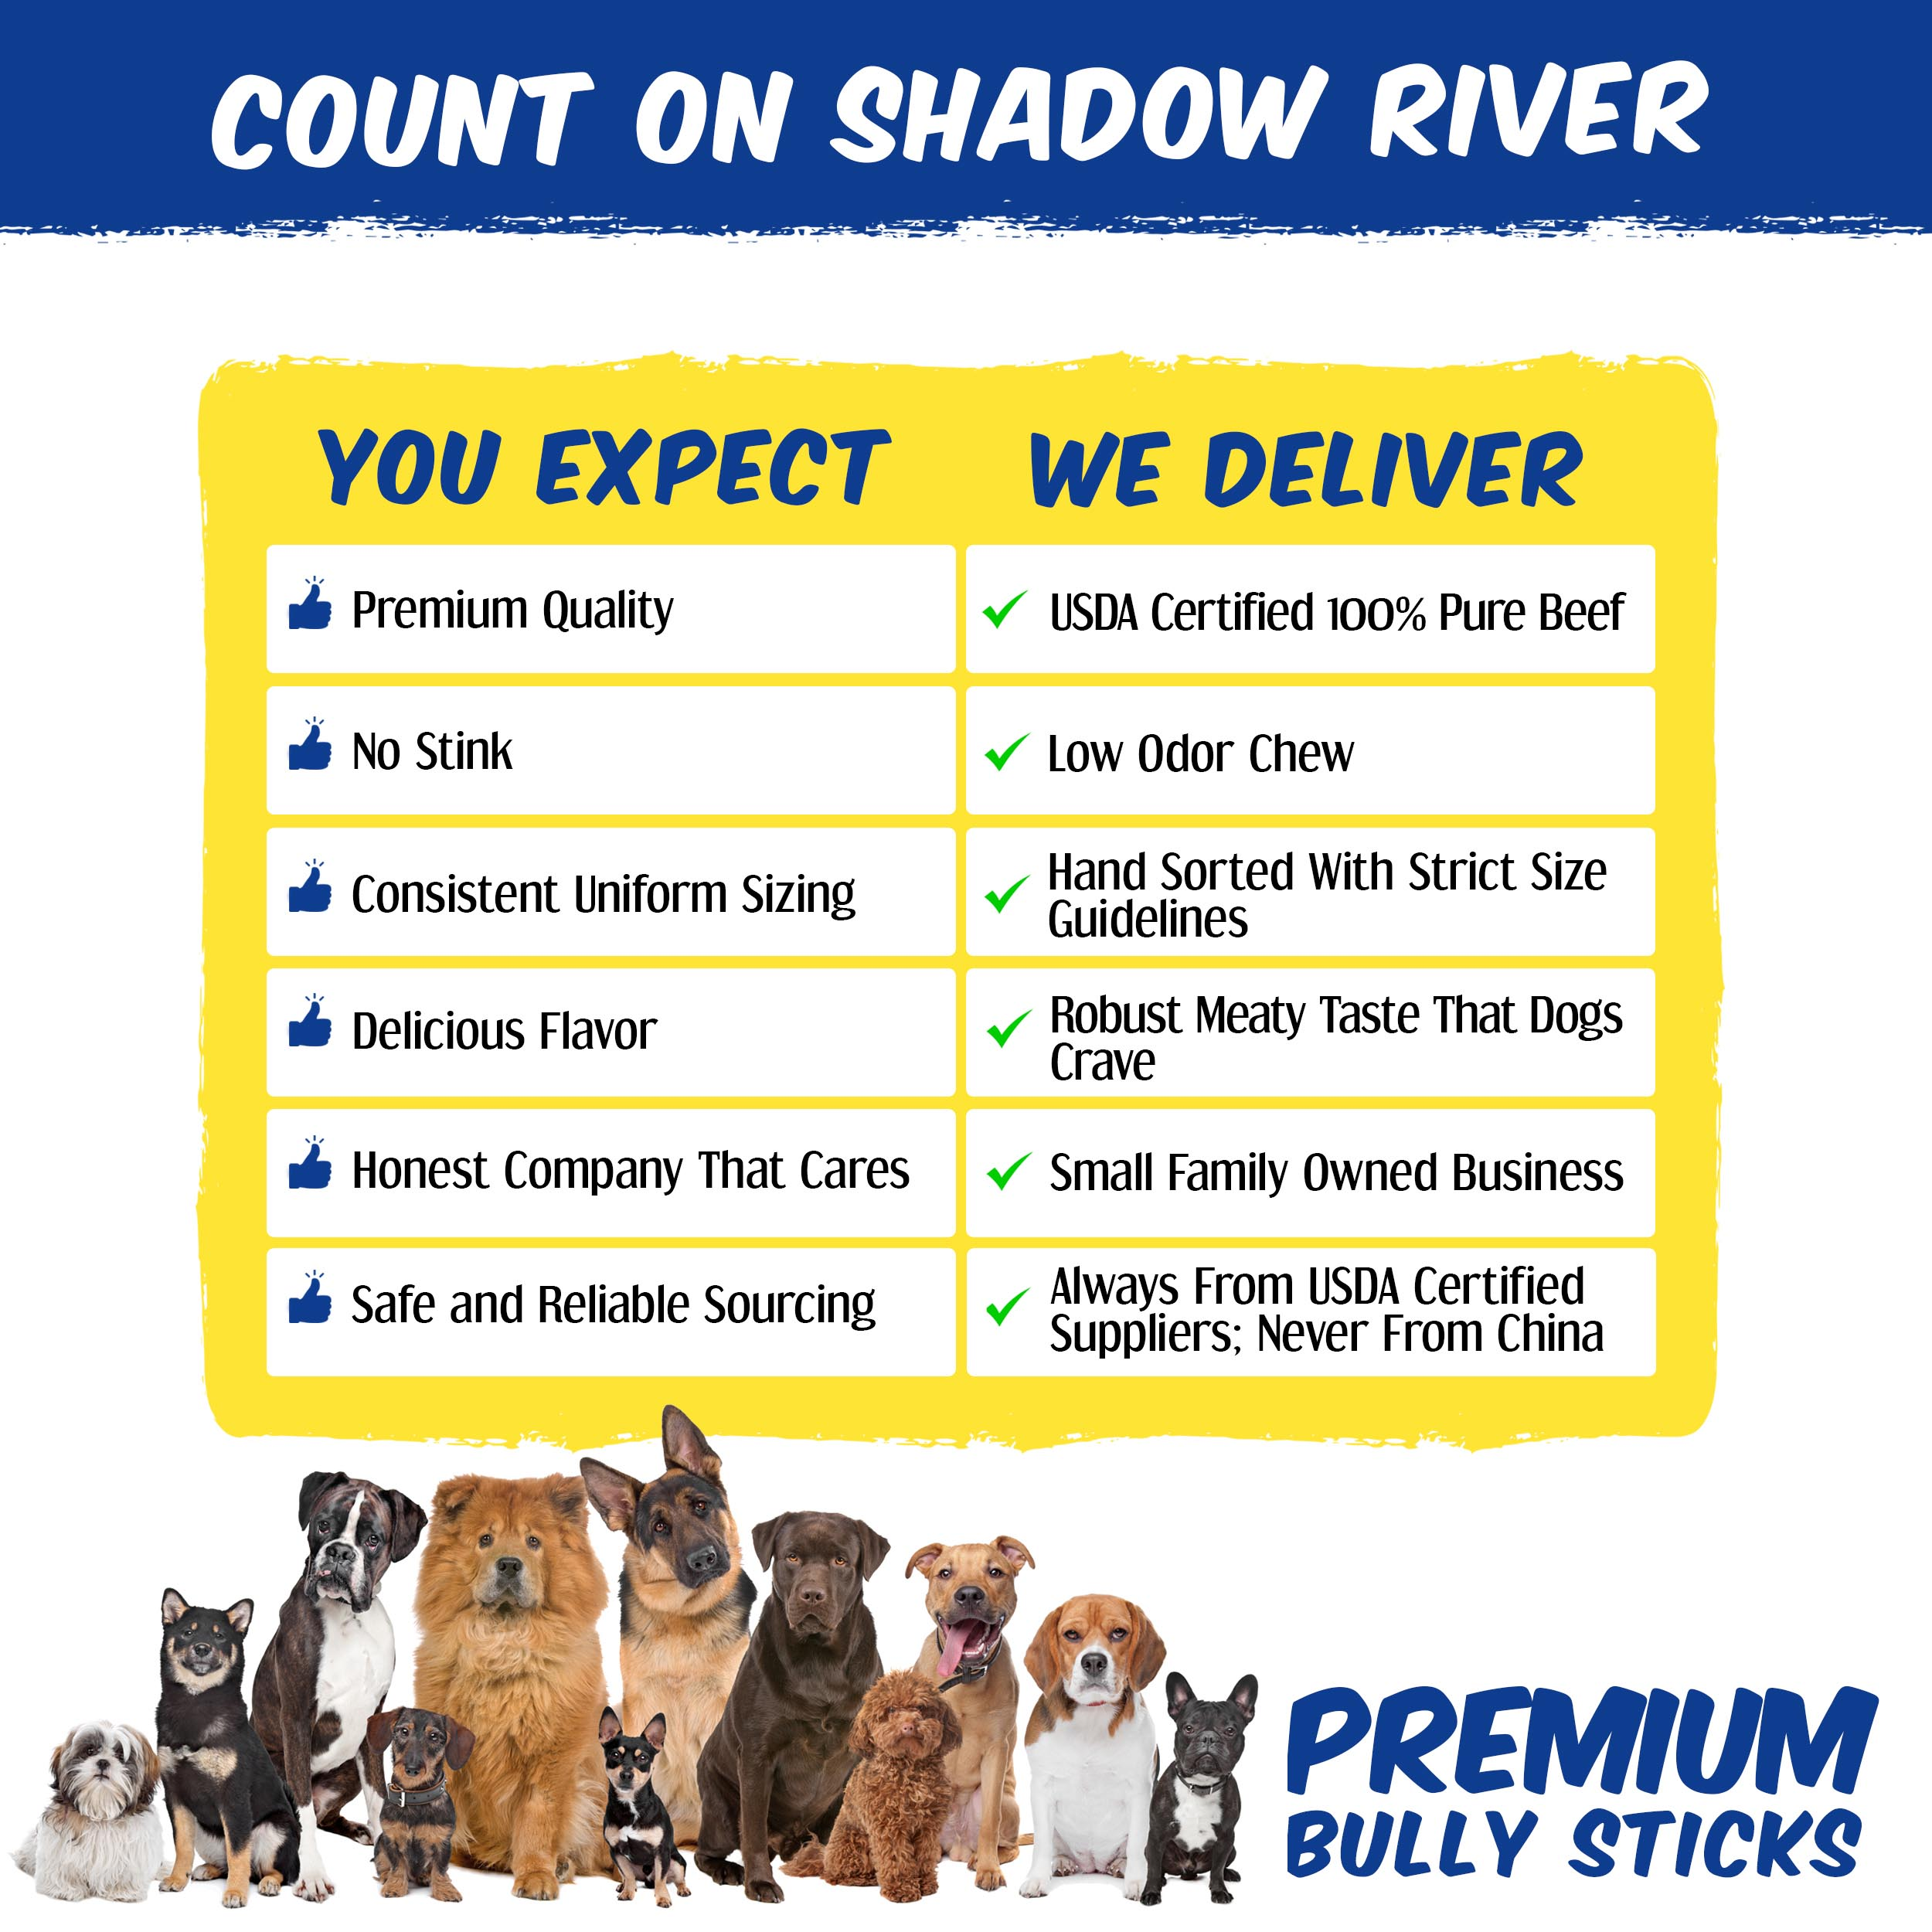 thumbnail 16 - Shadow River 6 Inch REGULAR All Natural Premium Beef Bully Stick Dog Chew Treats